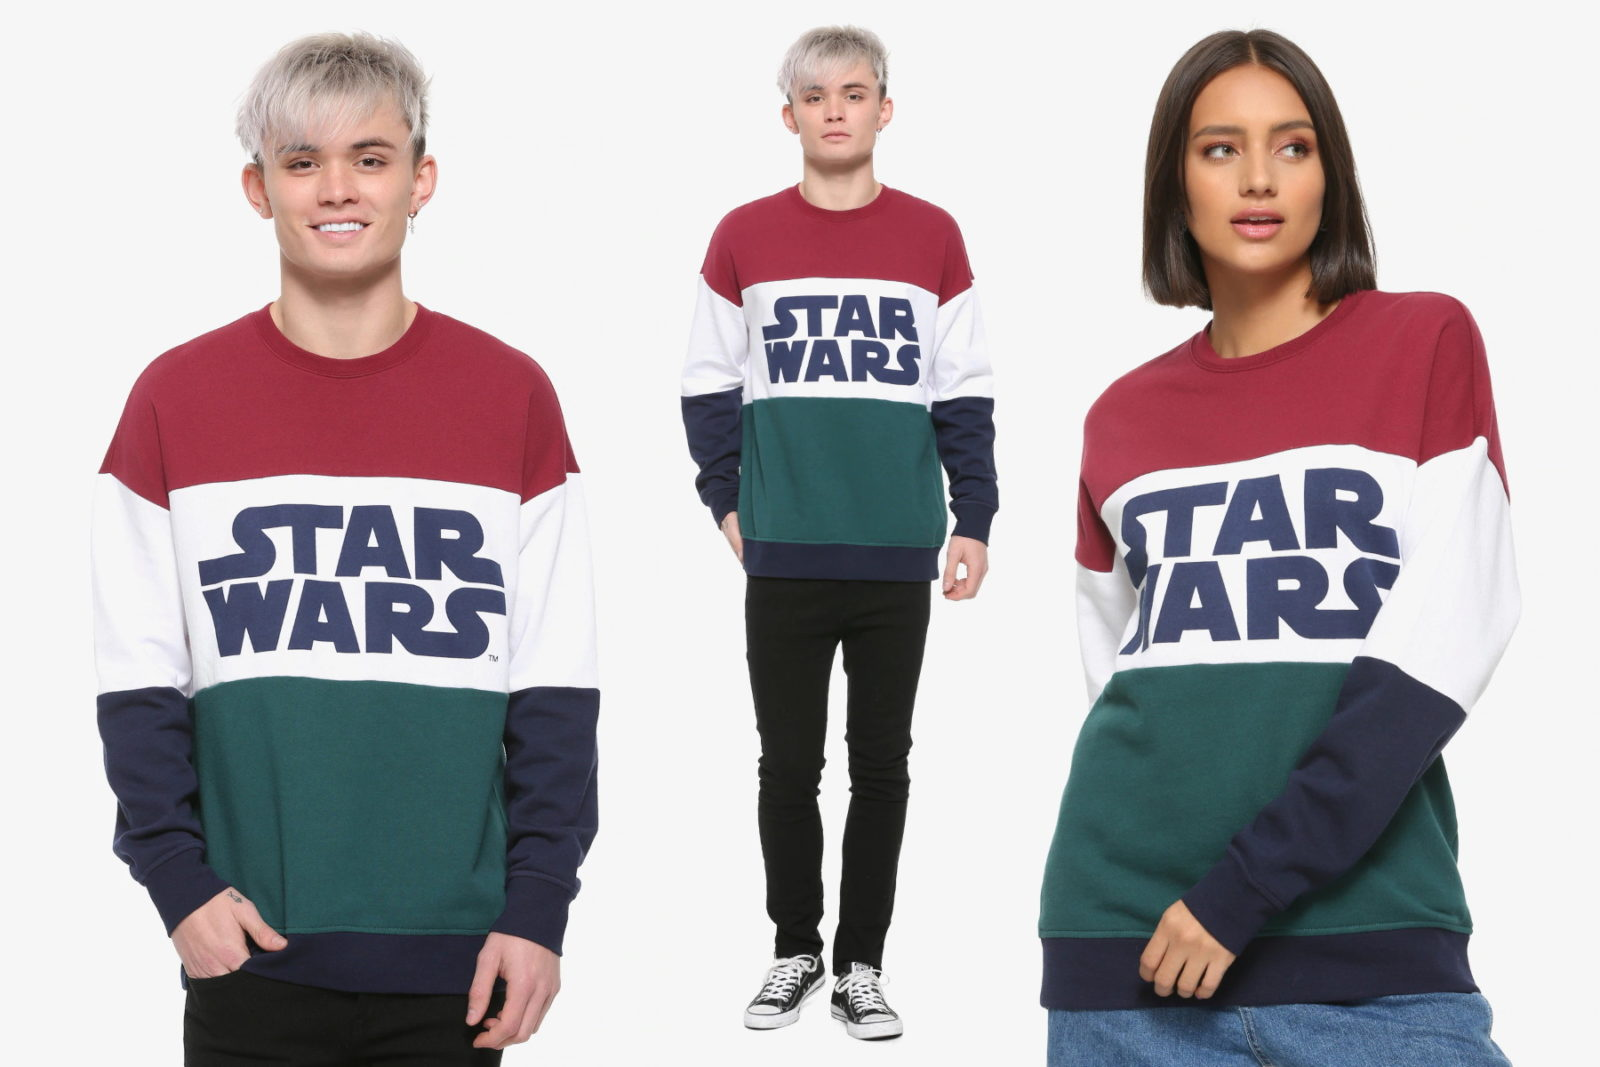 Our Universe Star Wars Color Block Sweatshirt at Her Universe